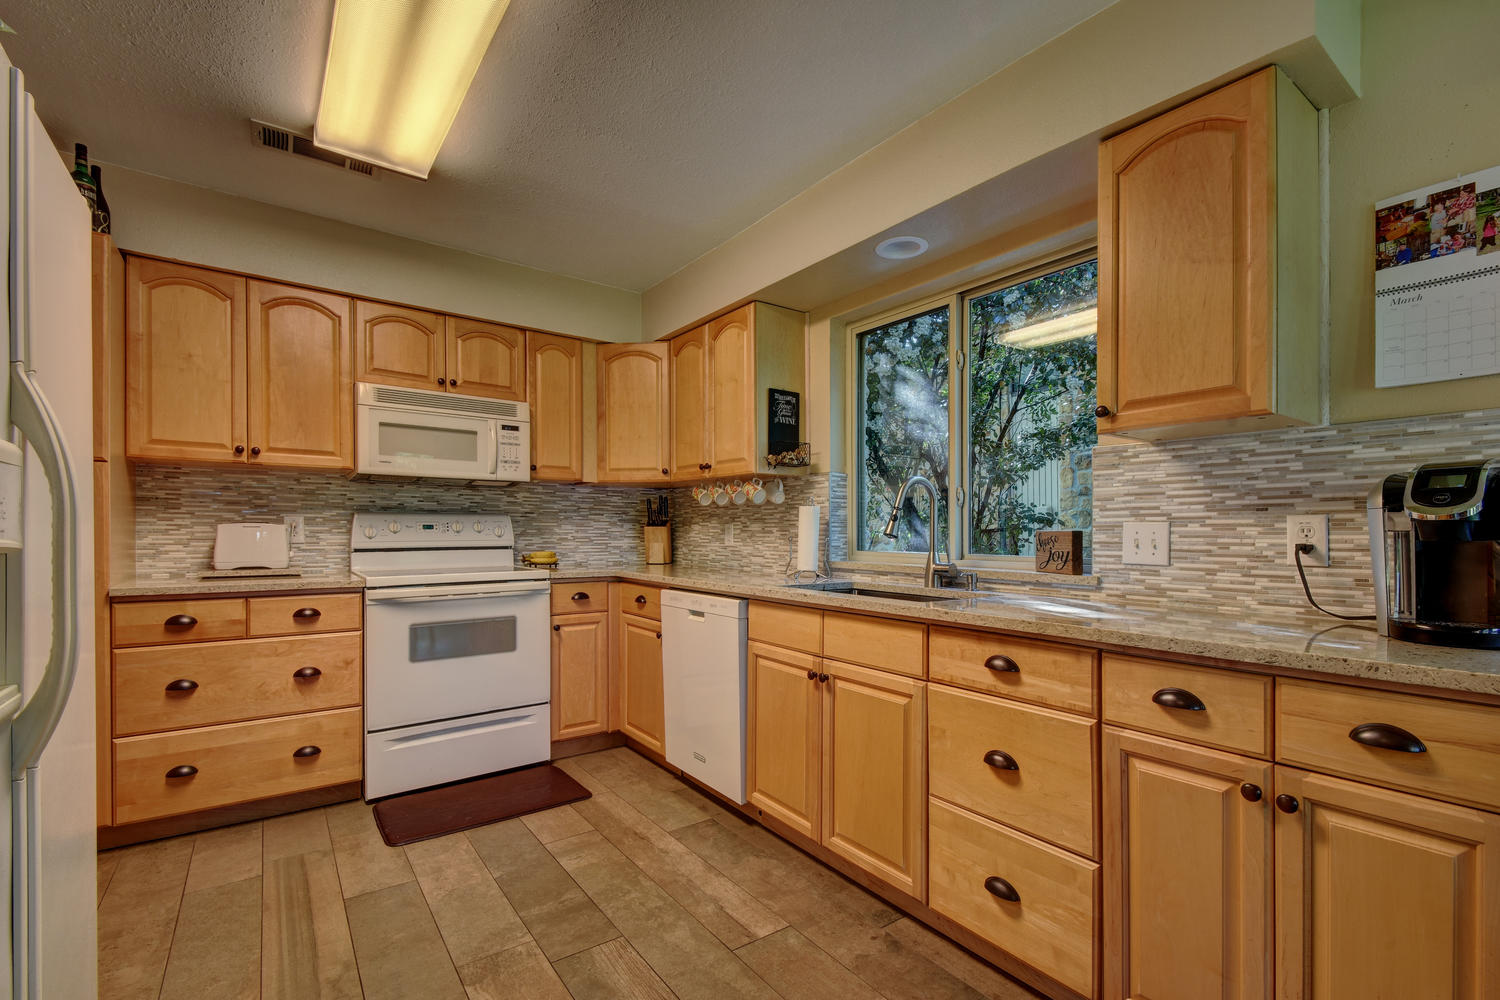 1406 Windy Cove-large-013-8-Kitchen and Breakfast 003-1500x1000-72dpi.jpg